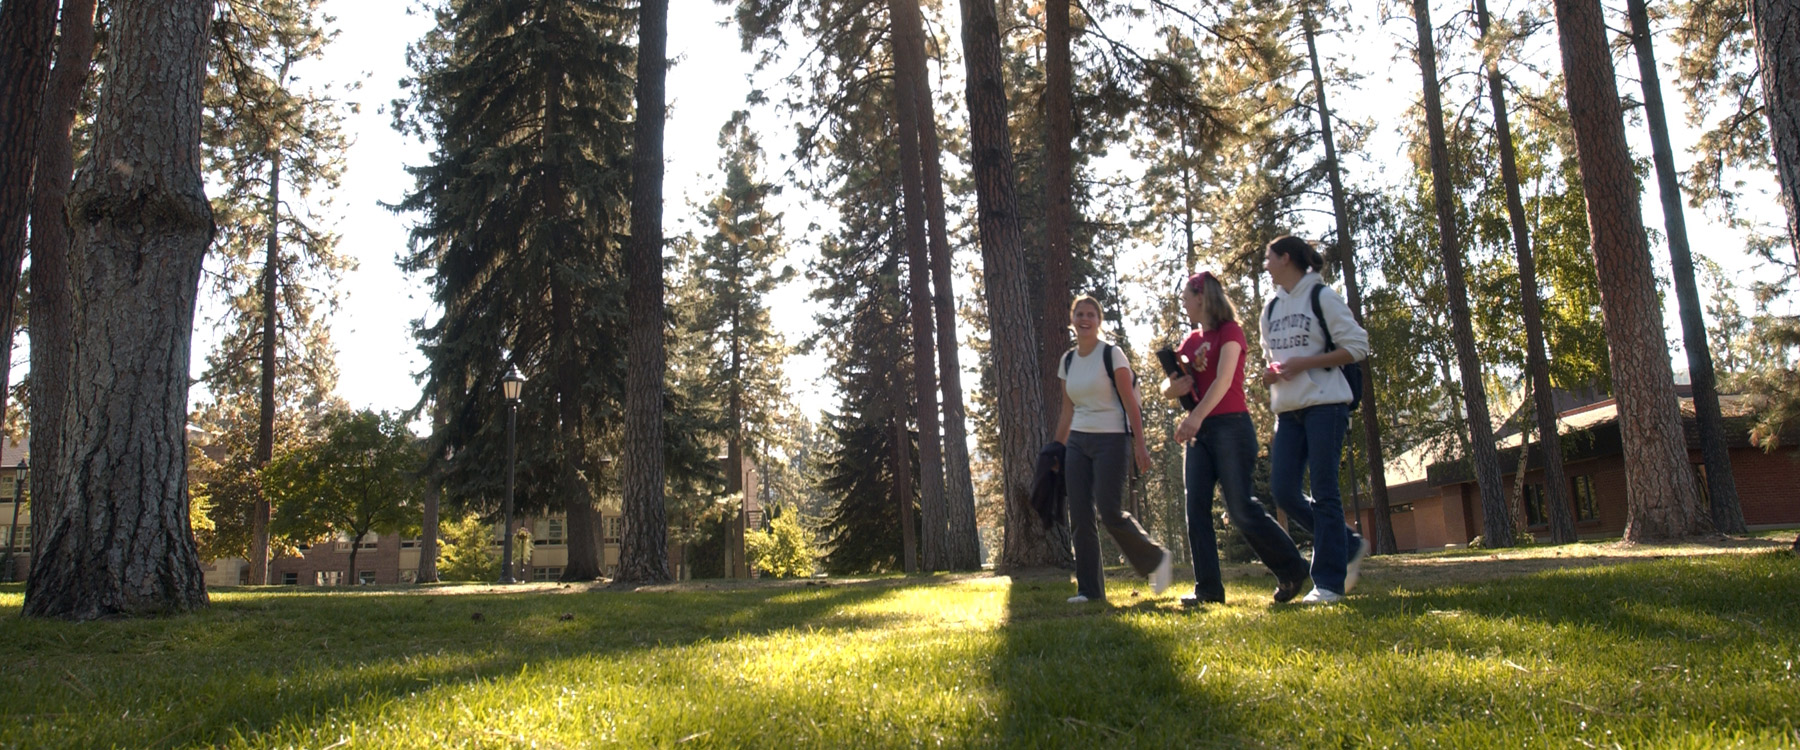 Three female students walk across the grass in the middle of campus. Tall pine trees cast shadows across the grass.